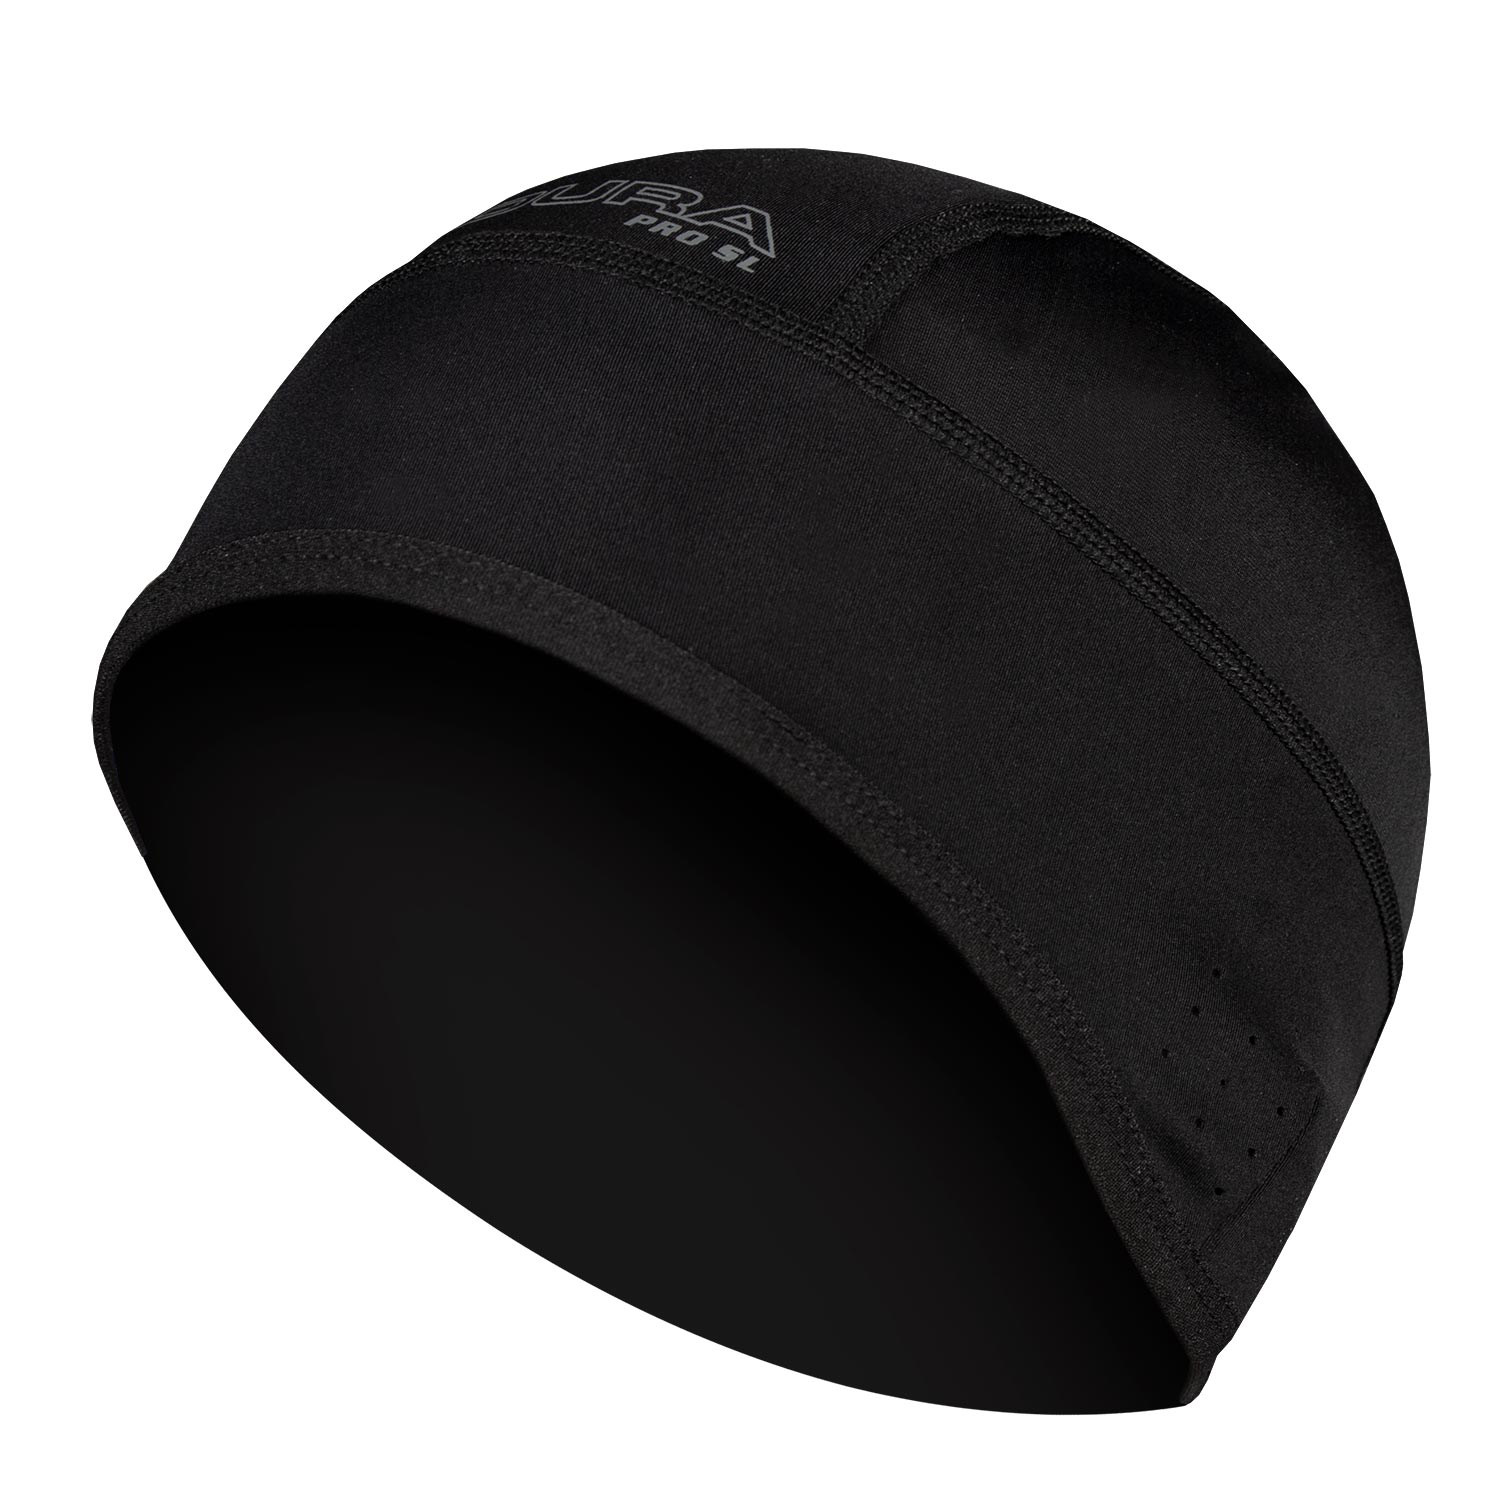 Endura Pro SL (S-M) Thermal Windproof Headwarmer Skull Cap